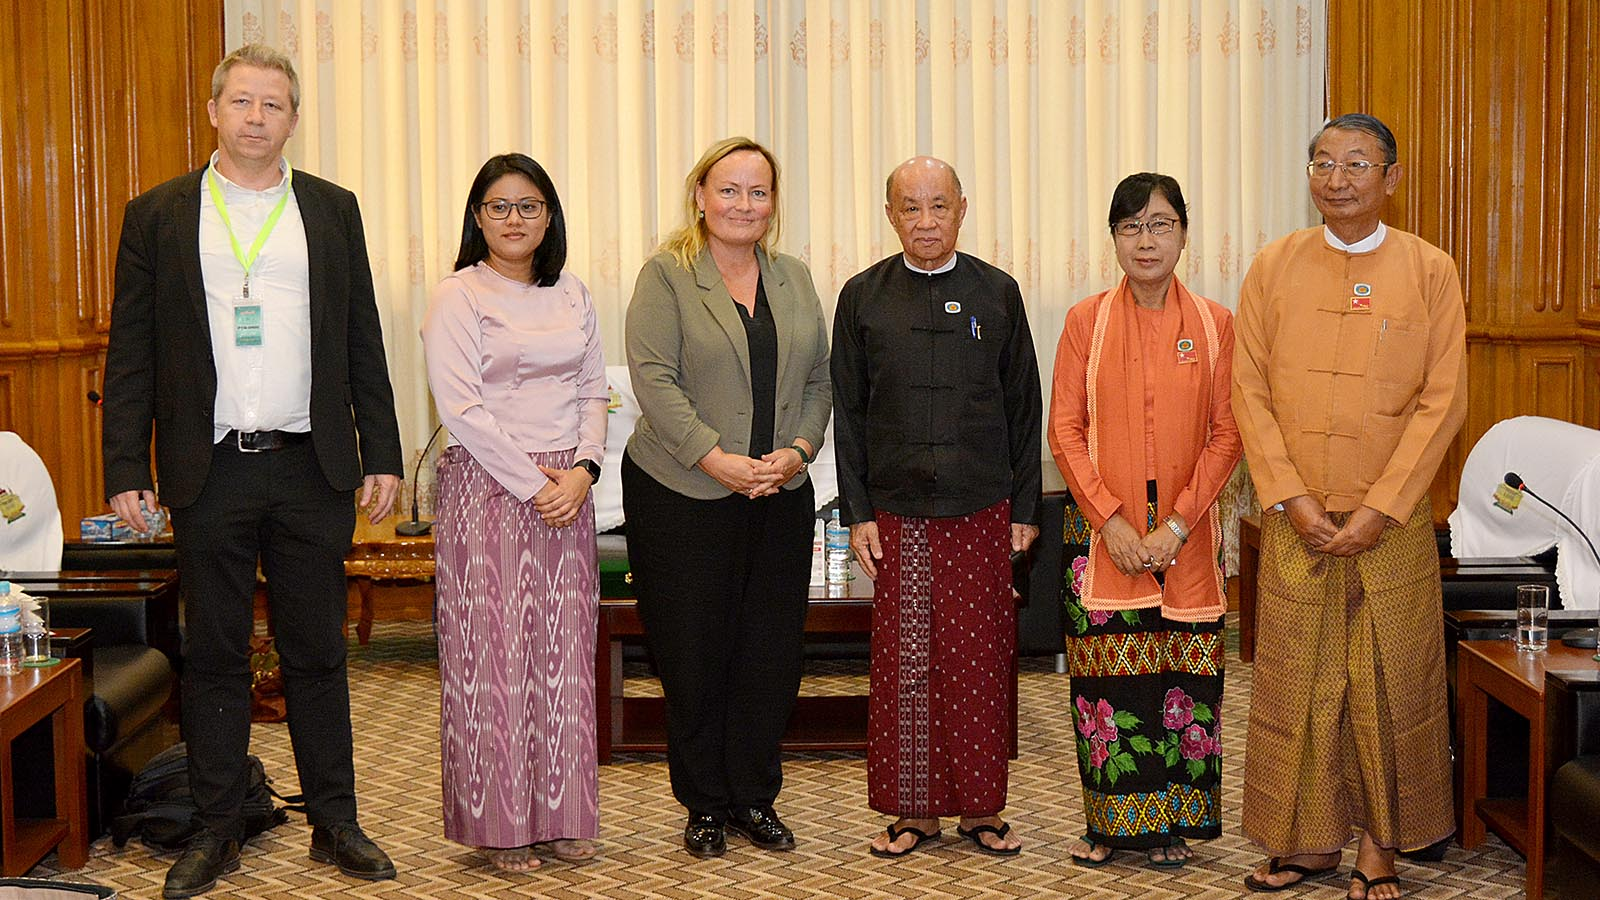 Pyithu Hluttaw Deputy Speaker U Tun Tun Hein and Director of Danish Institute for Parties and Democracy (DIPD) Mrs Lisbeth Pilegaard pose for a documentary photo in Nay Pyi Taw.Photo: MNA